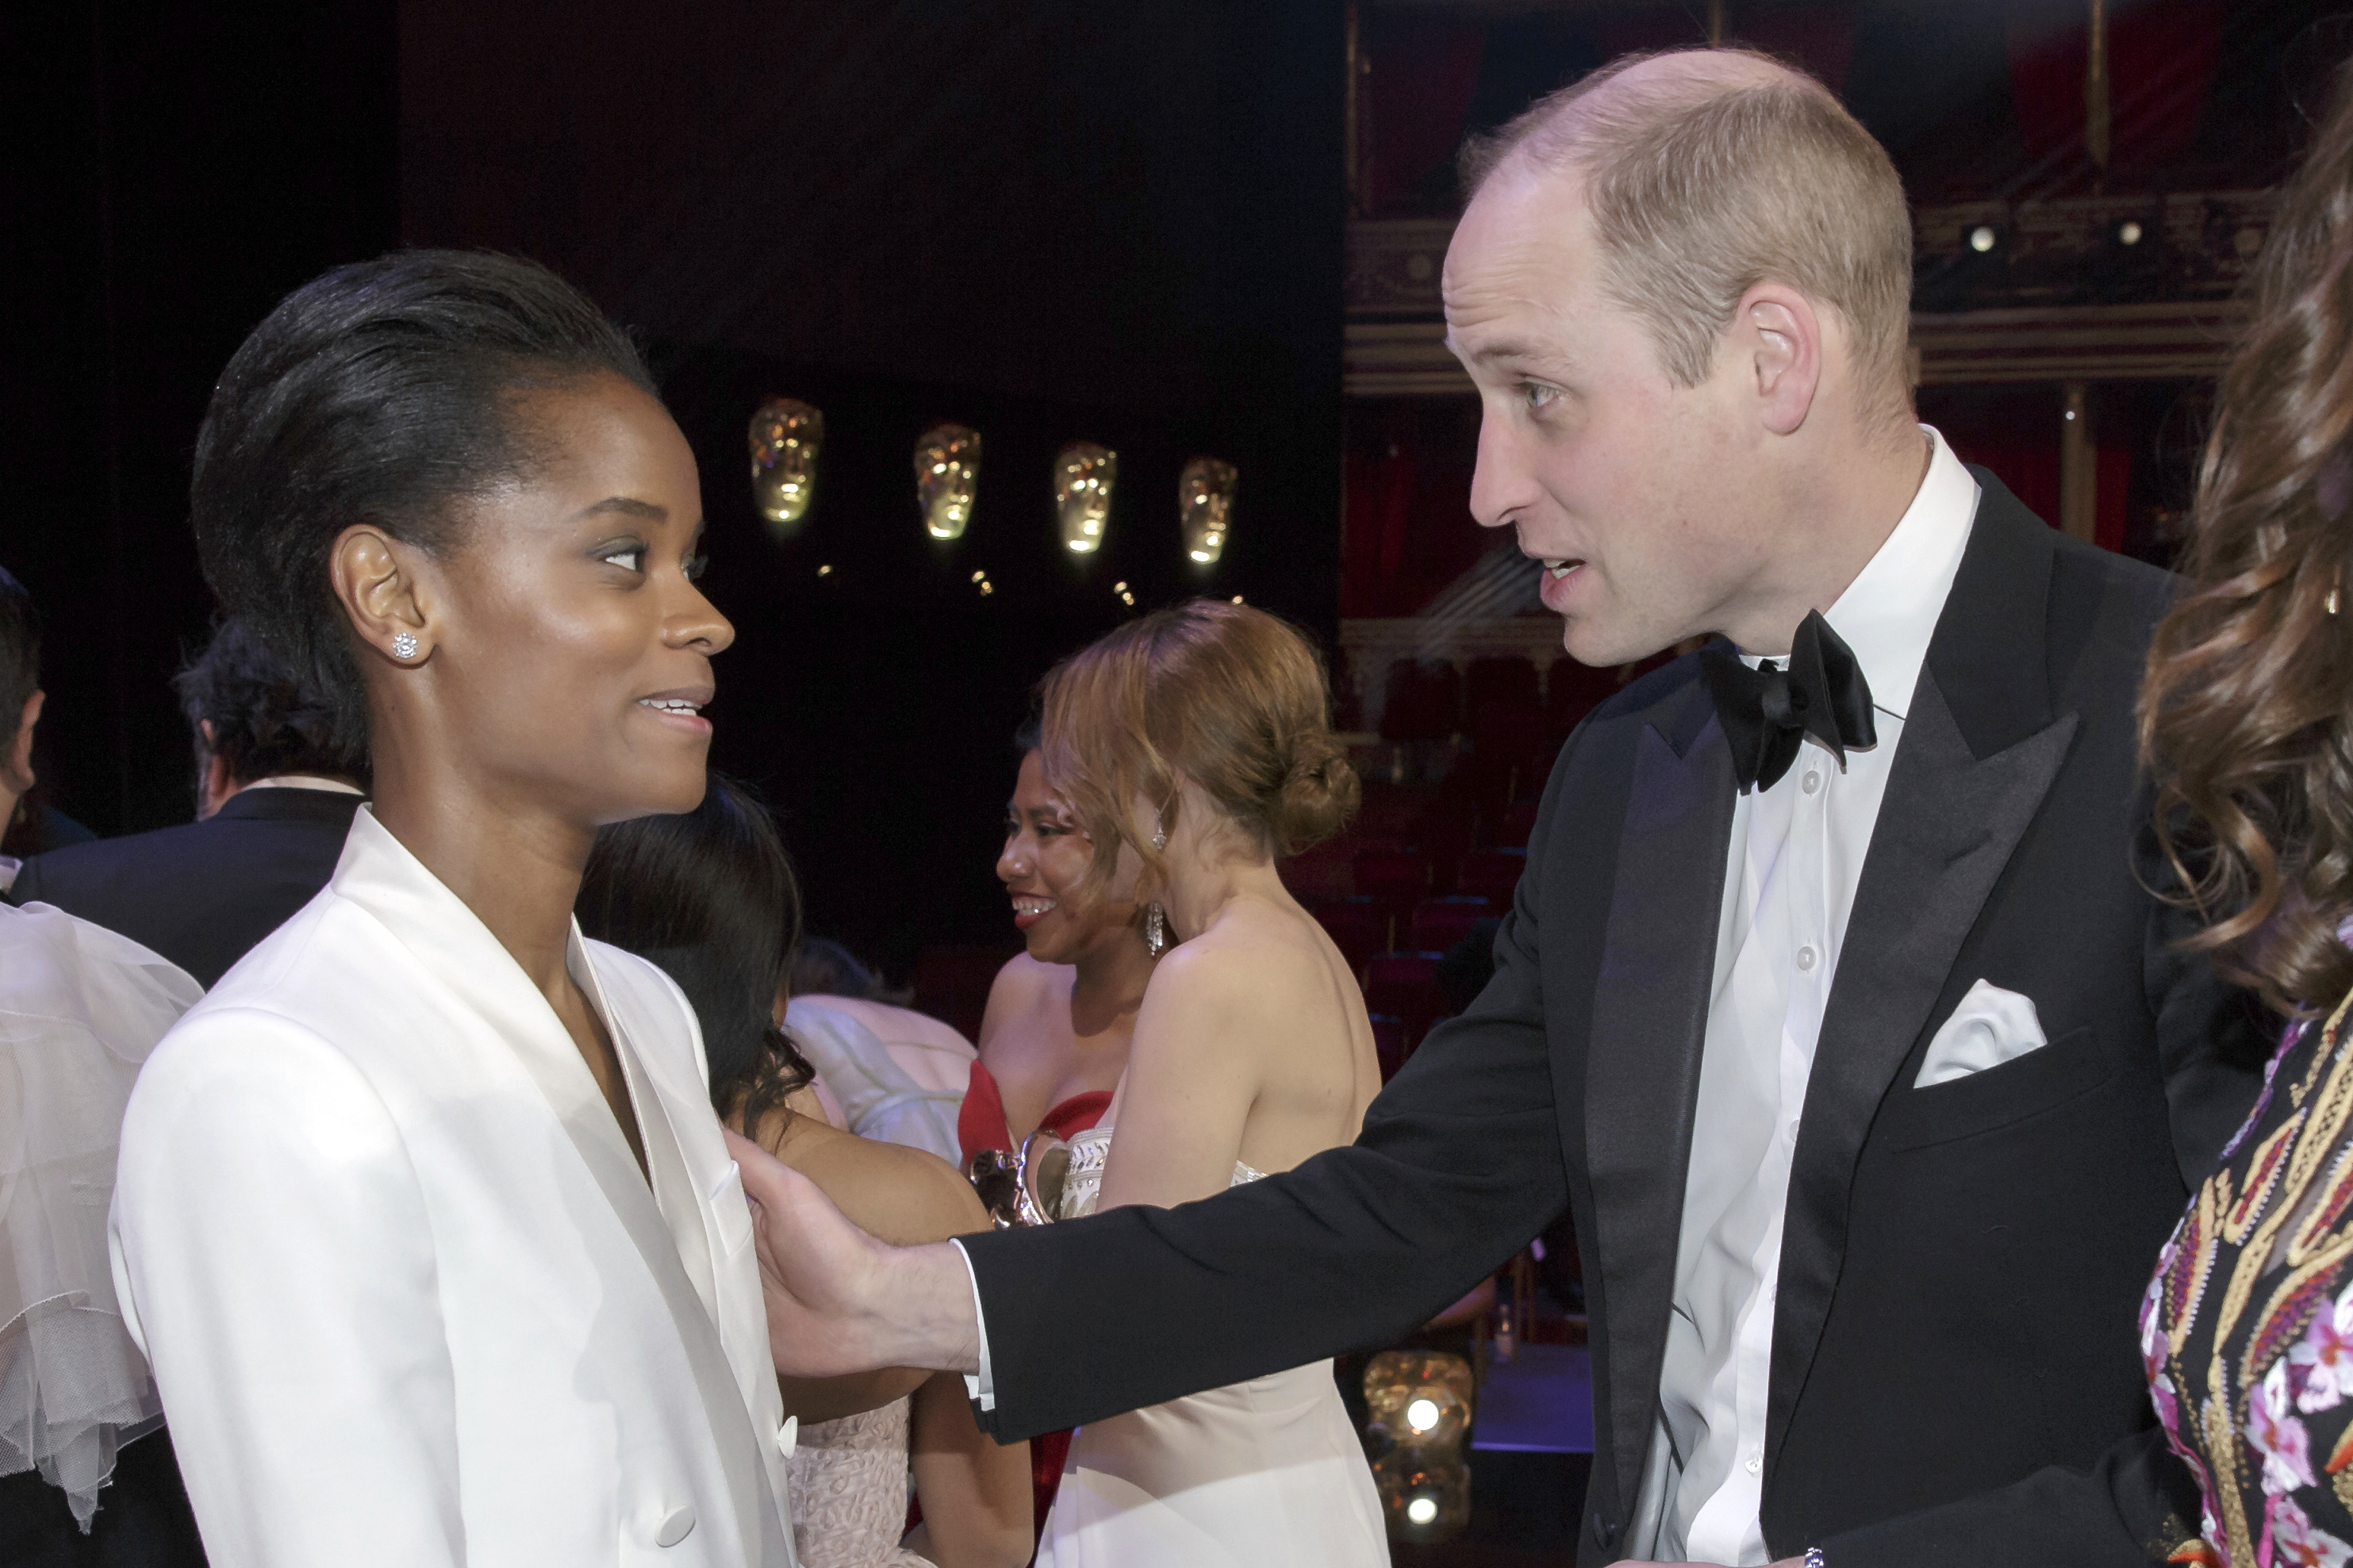 LONDON, ENGLAND - FEBRUARY 10: Prince William, Duke of Cambridge meets Letitia Wright after the following the EE British Academy Film Awards at Royal Albert Hall on February 10, 2019 in London, England. (Photo by Tim Ireland - WPA Pool/Getty Images)